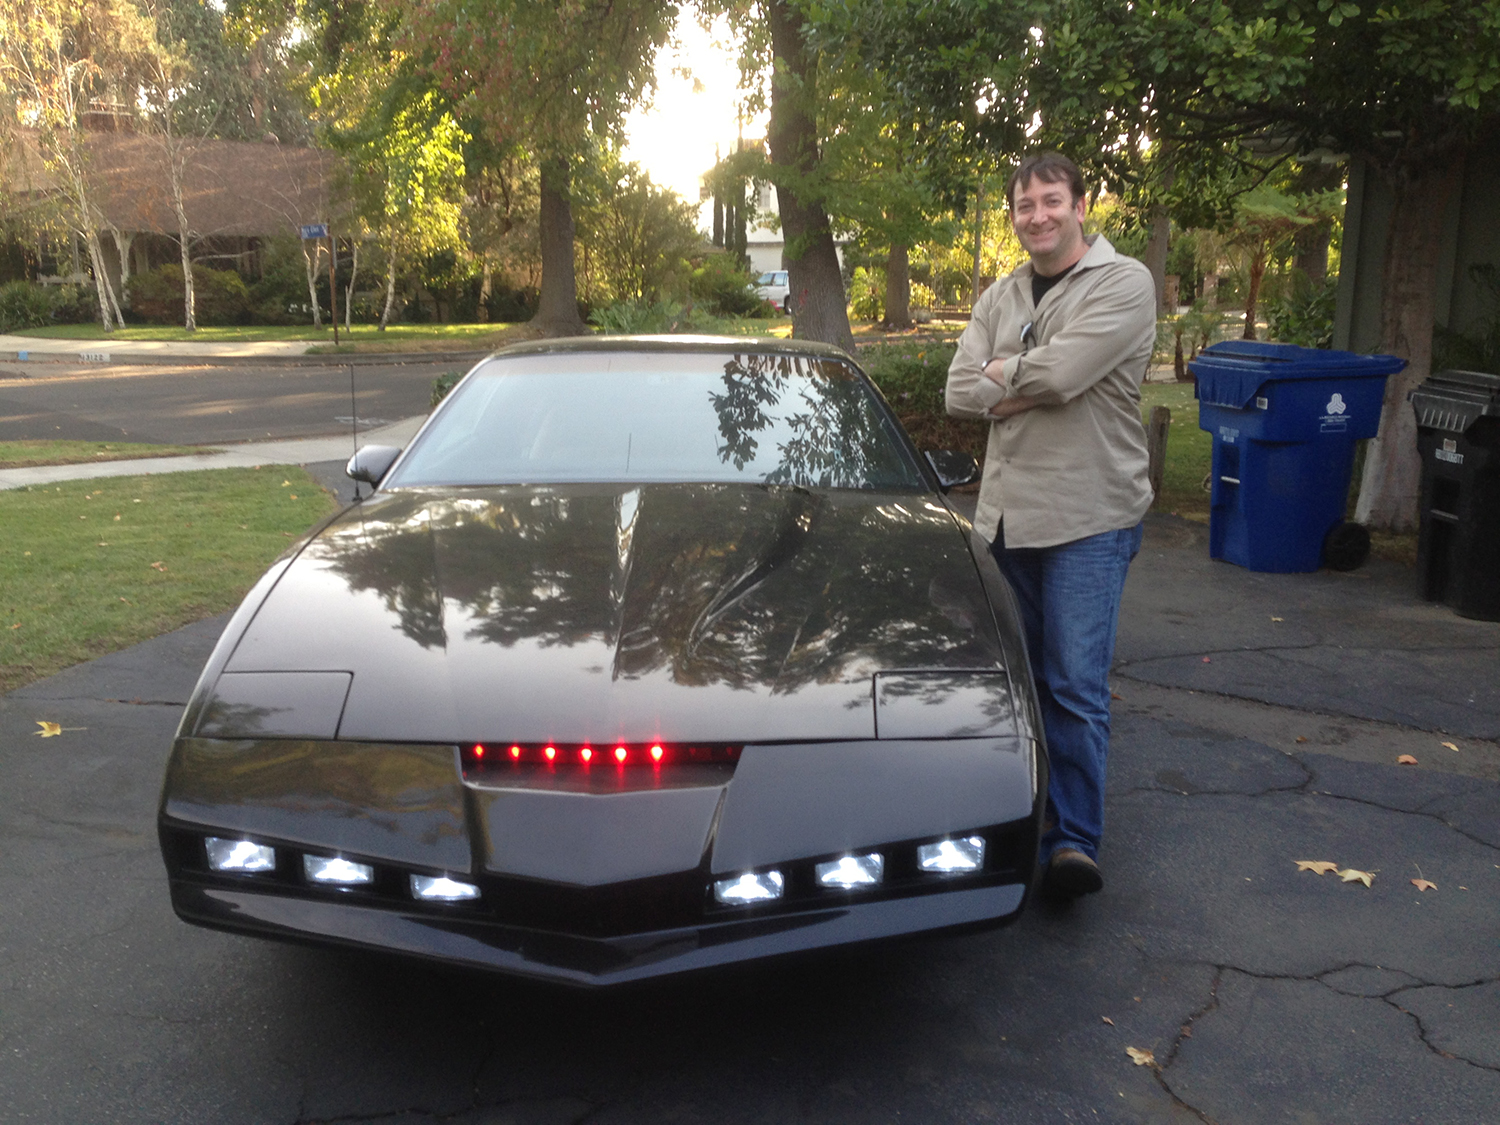 knight-rider-dave-rogers